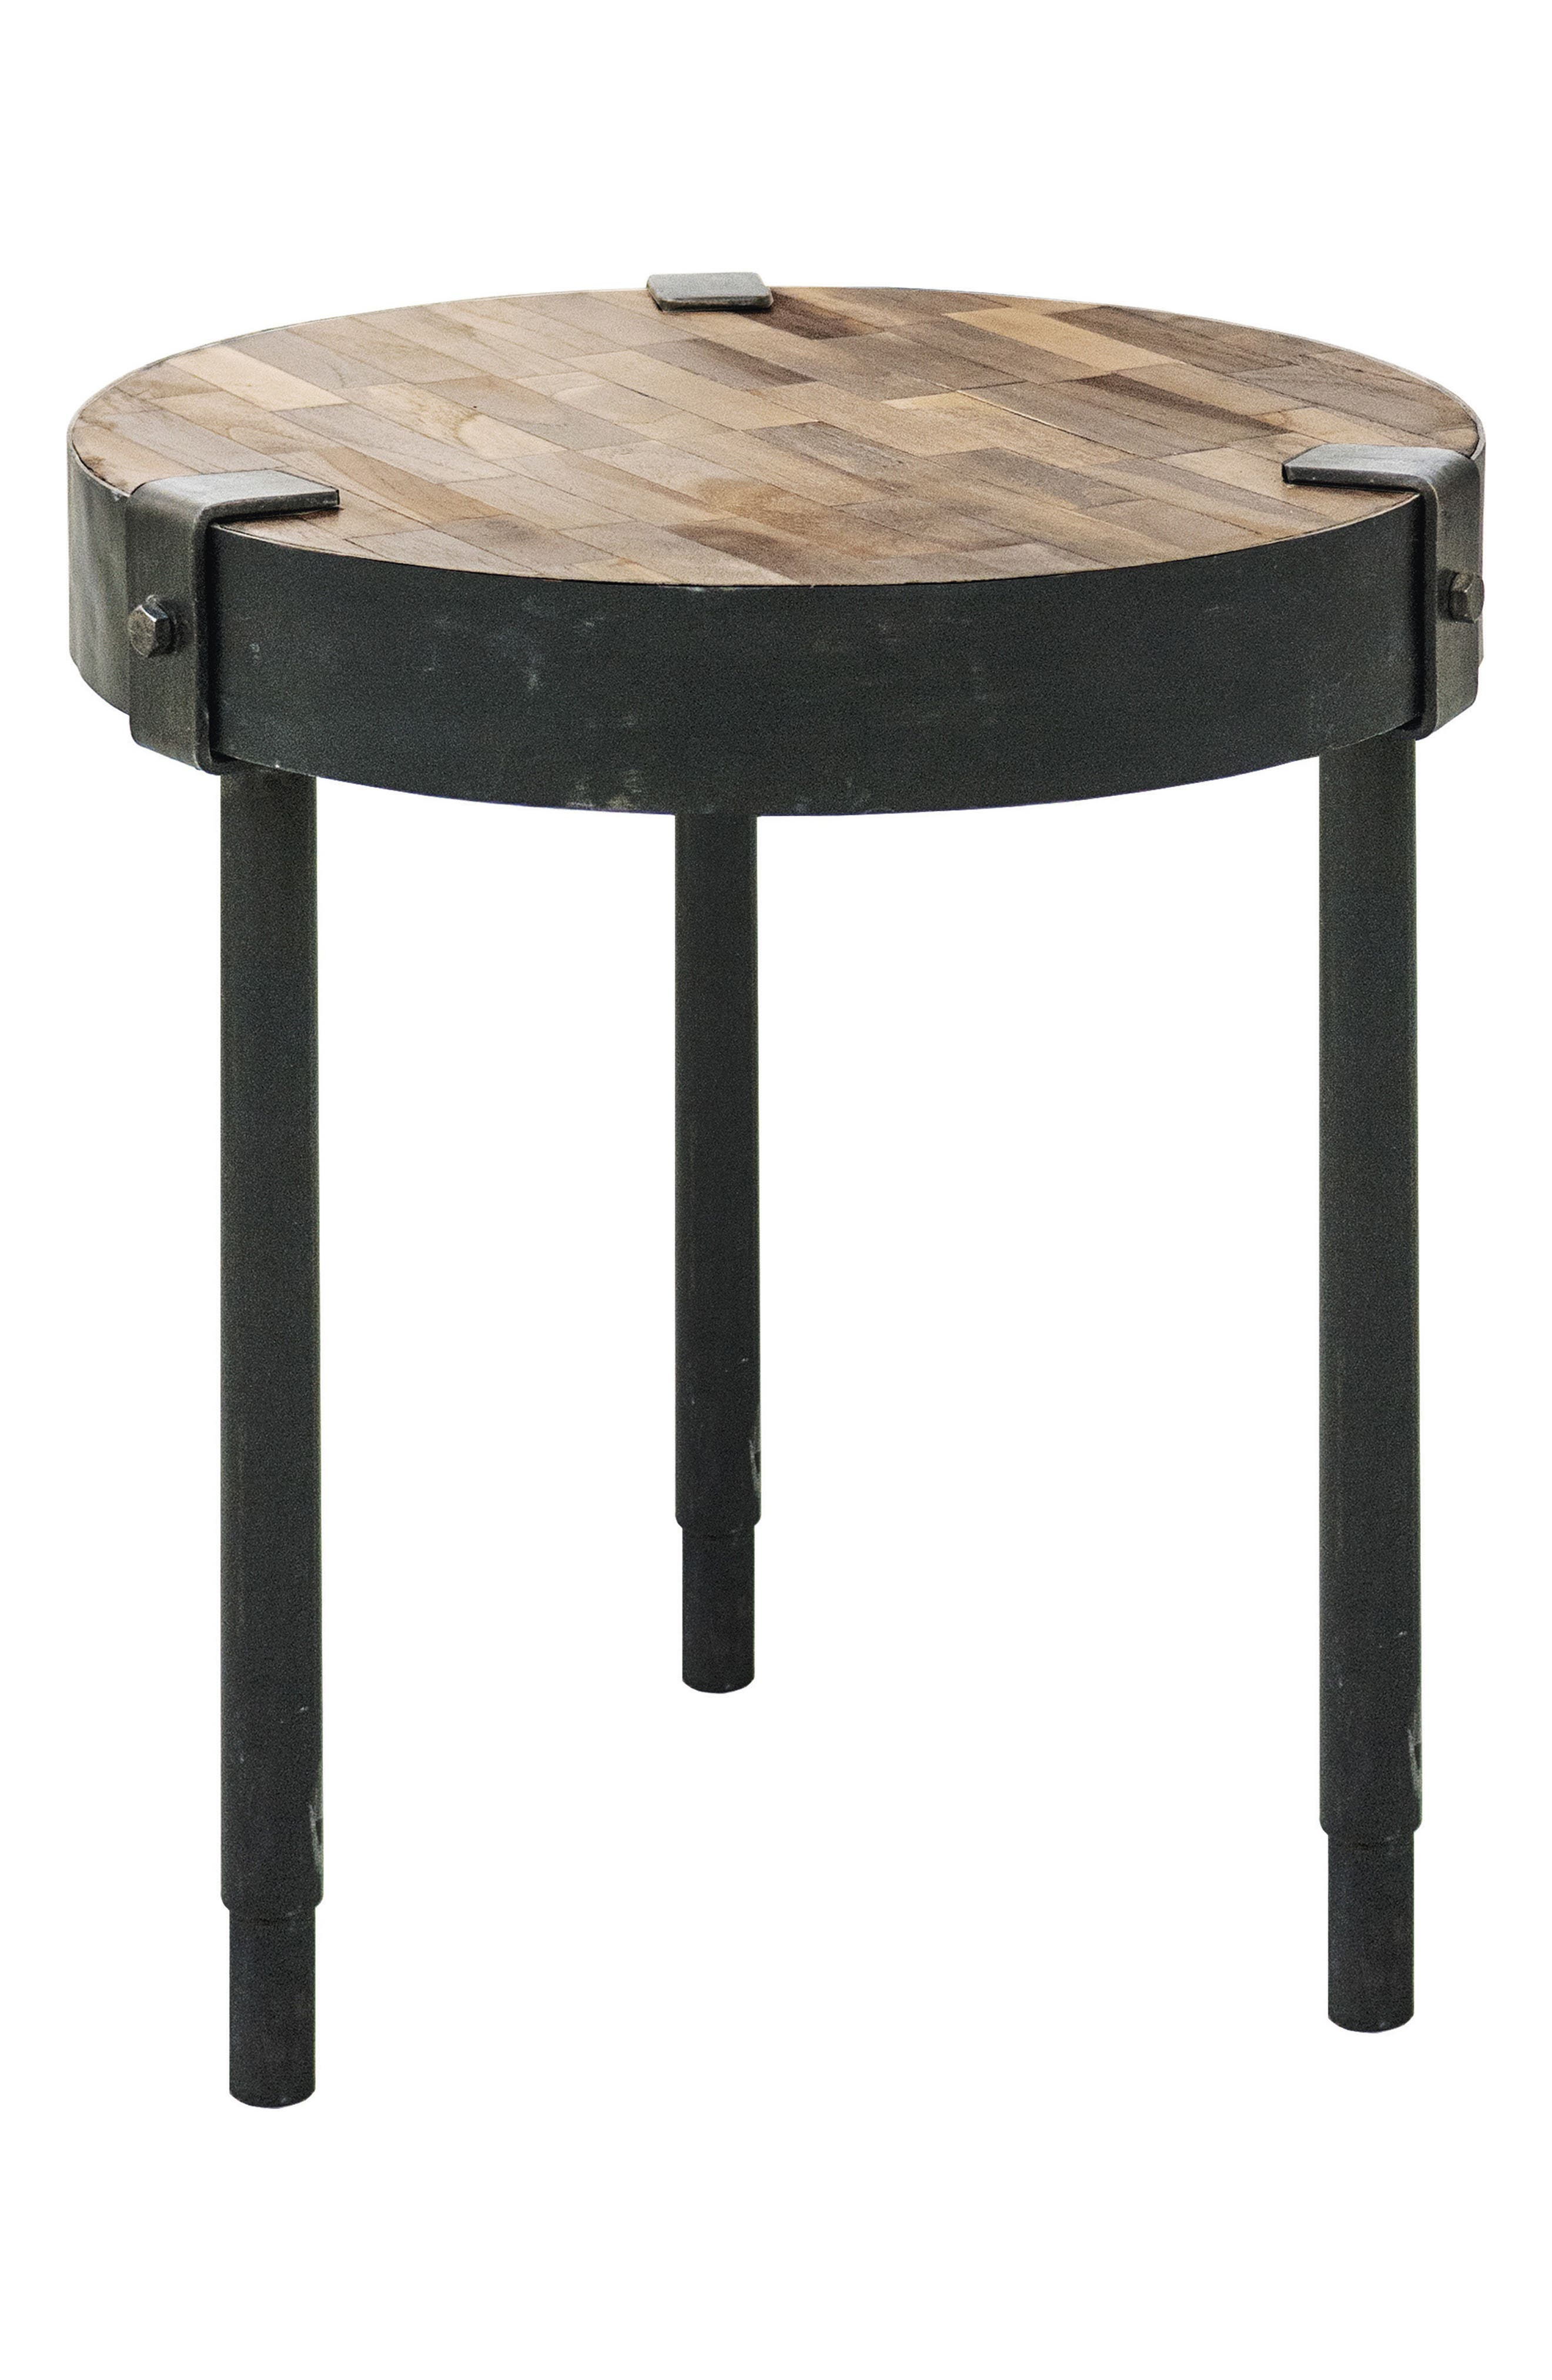 Main Image - Renwil Seebach Metal & Wood Accent Table